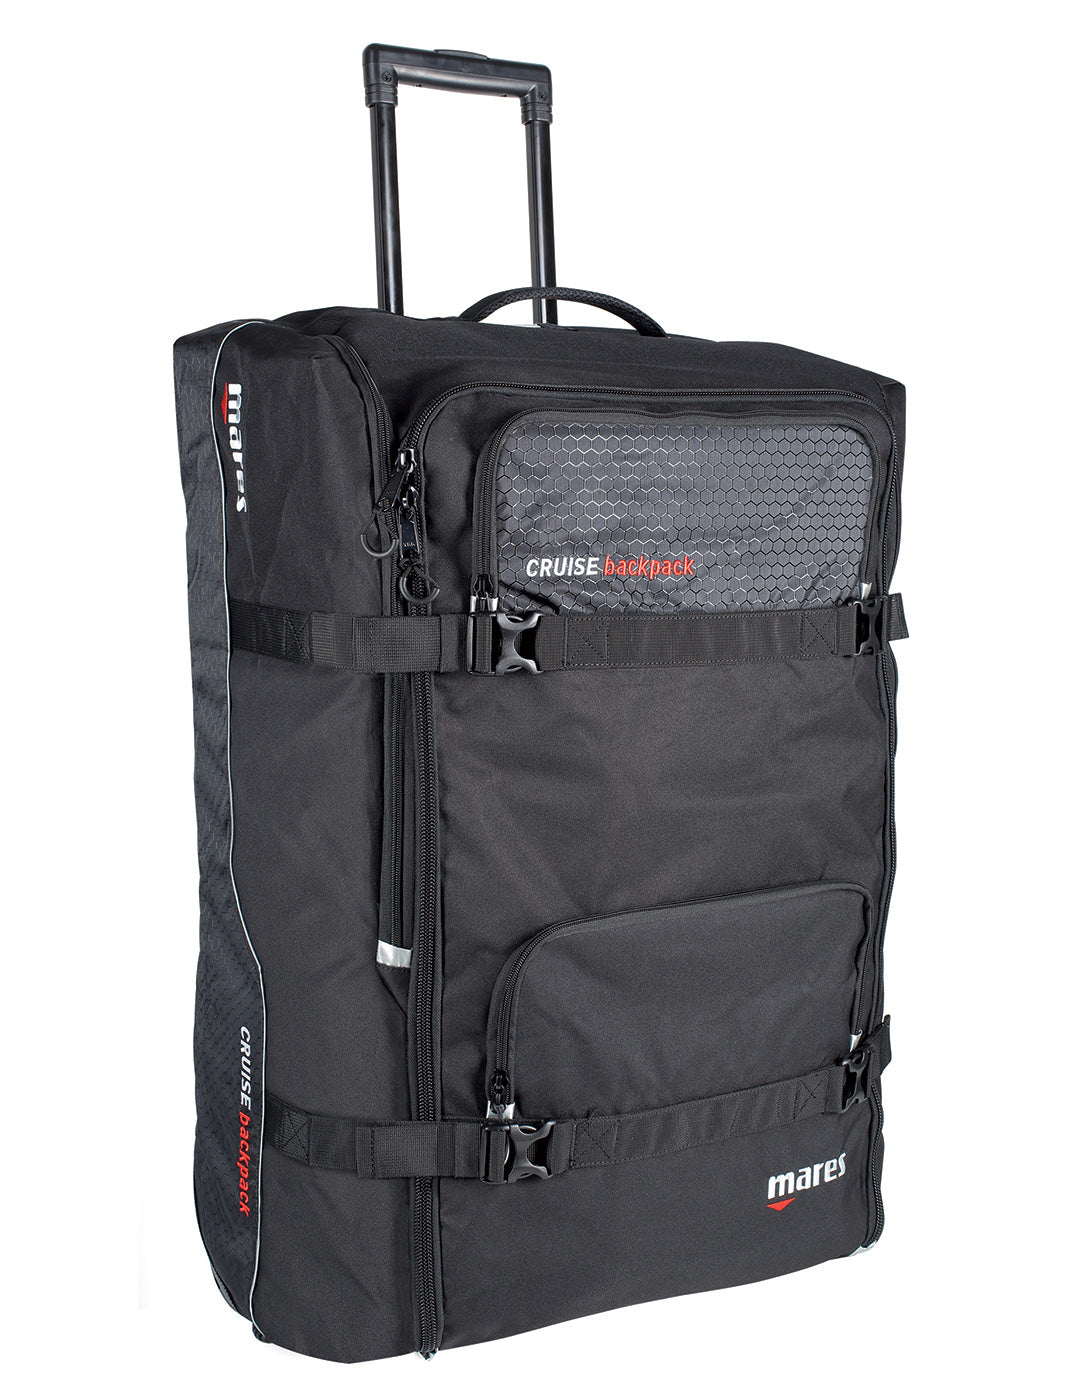 Image of Mares Cruise Backpack